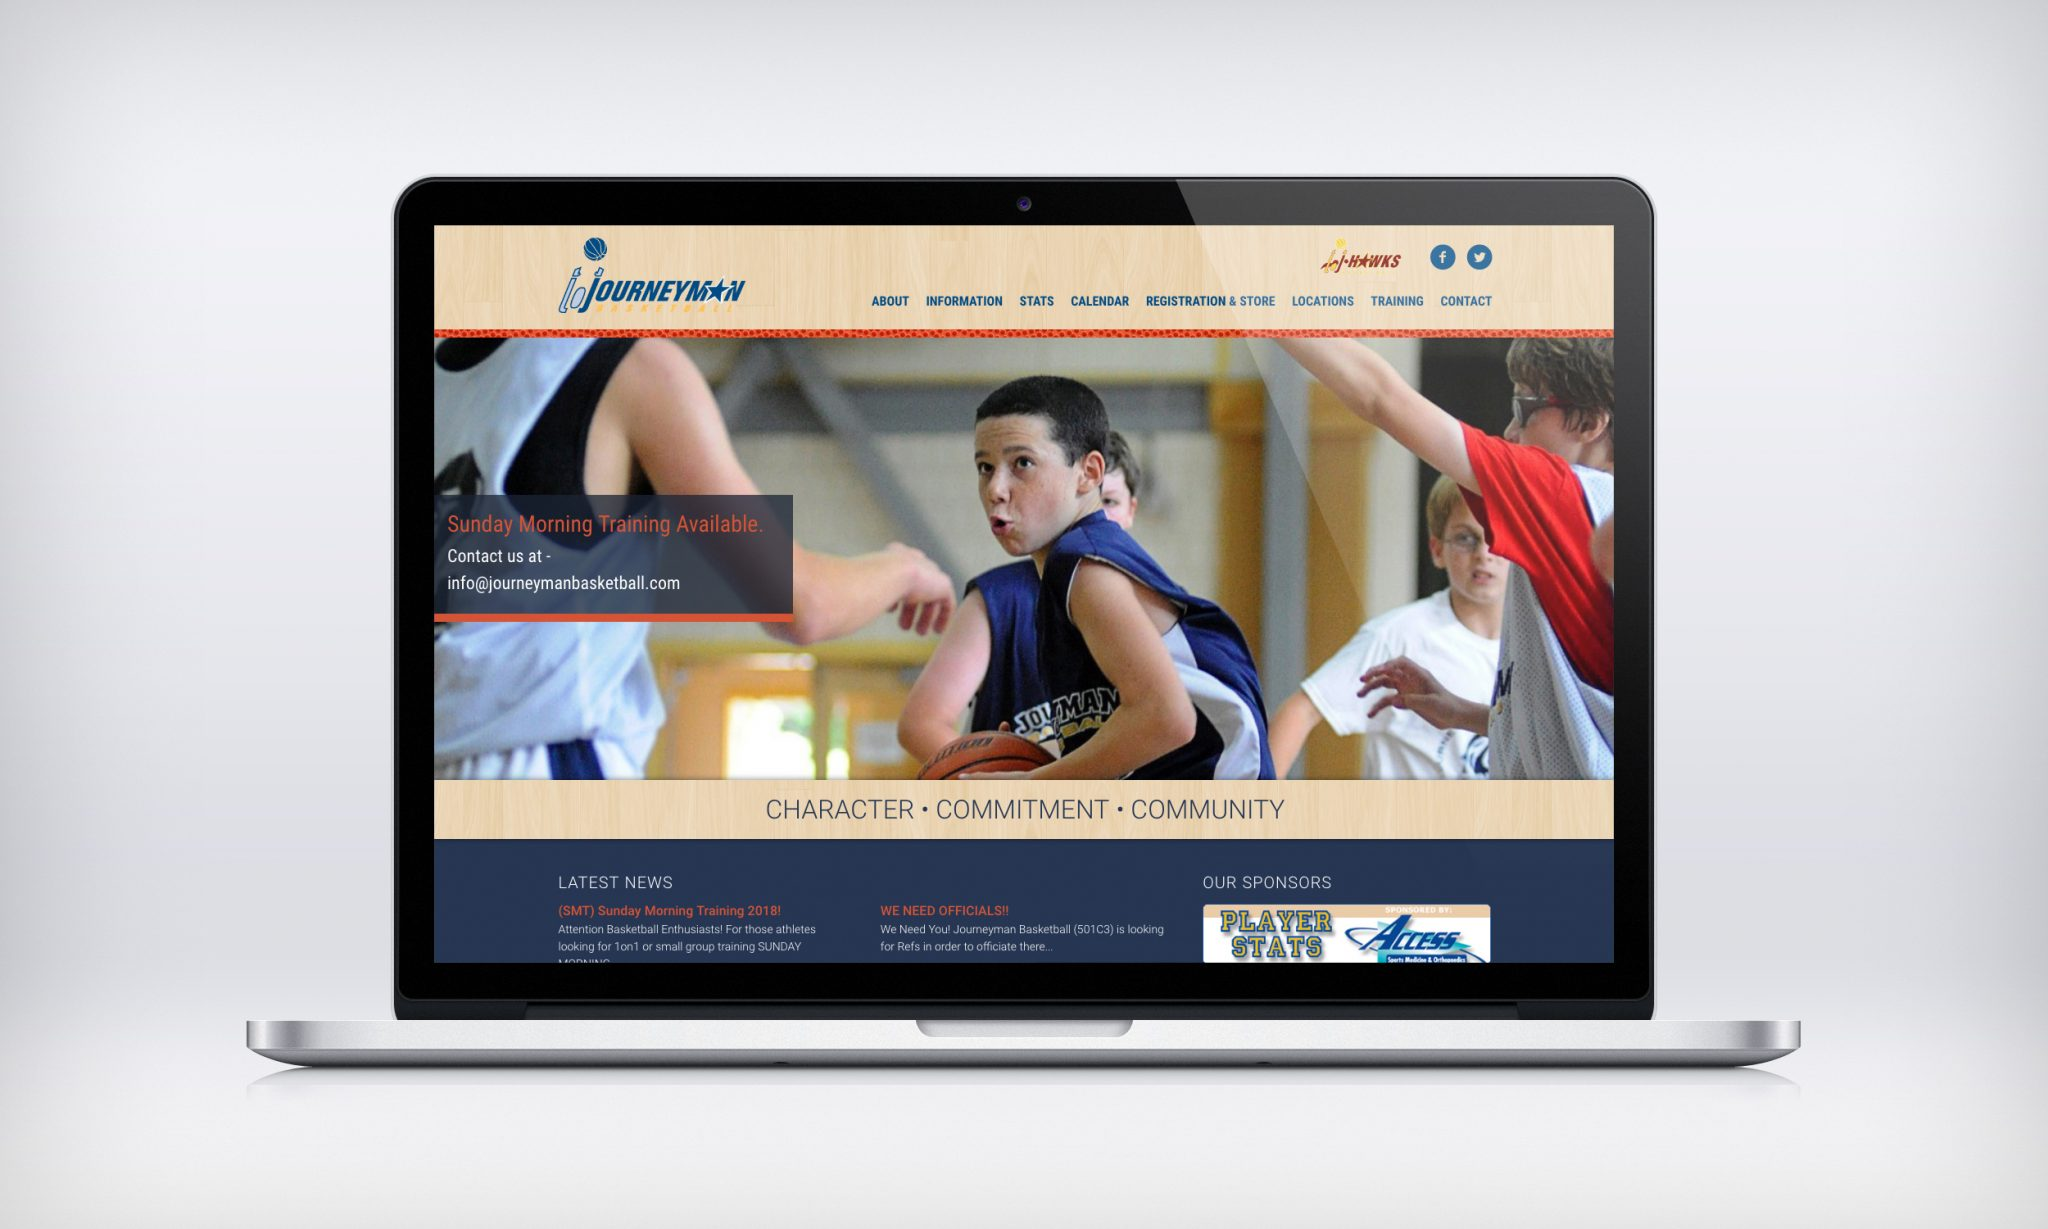 Journeyman Basketball website design